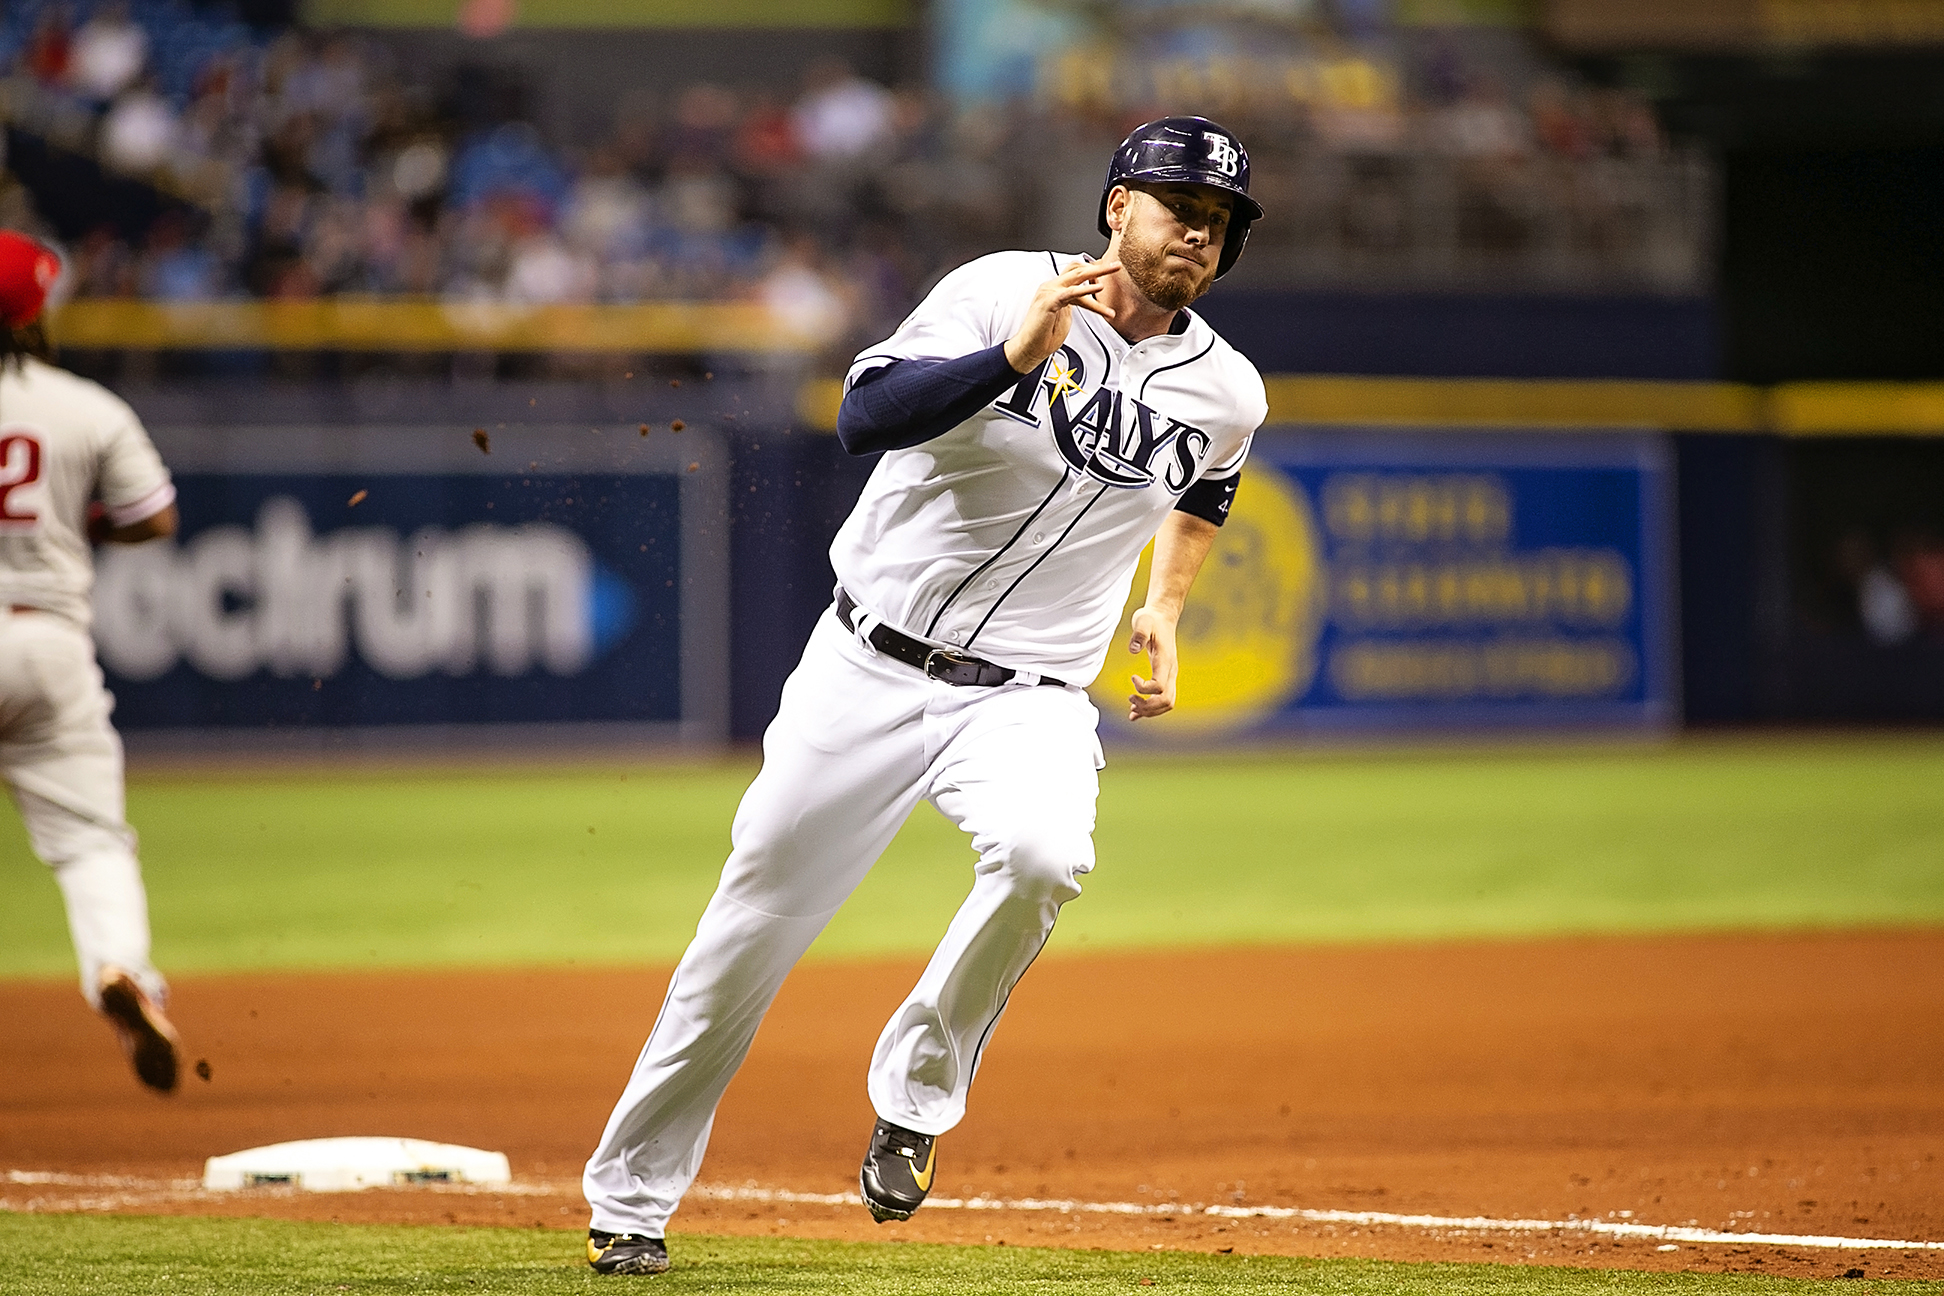 Cron scores in the fourth for the Rays./CARMEN MANDATO